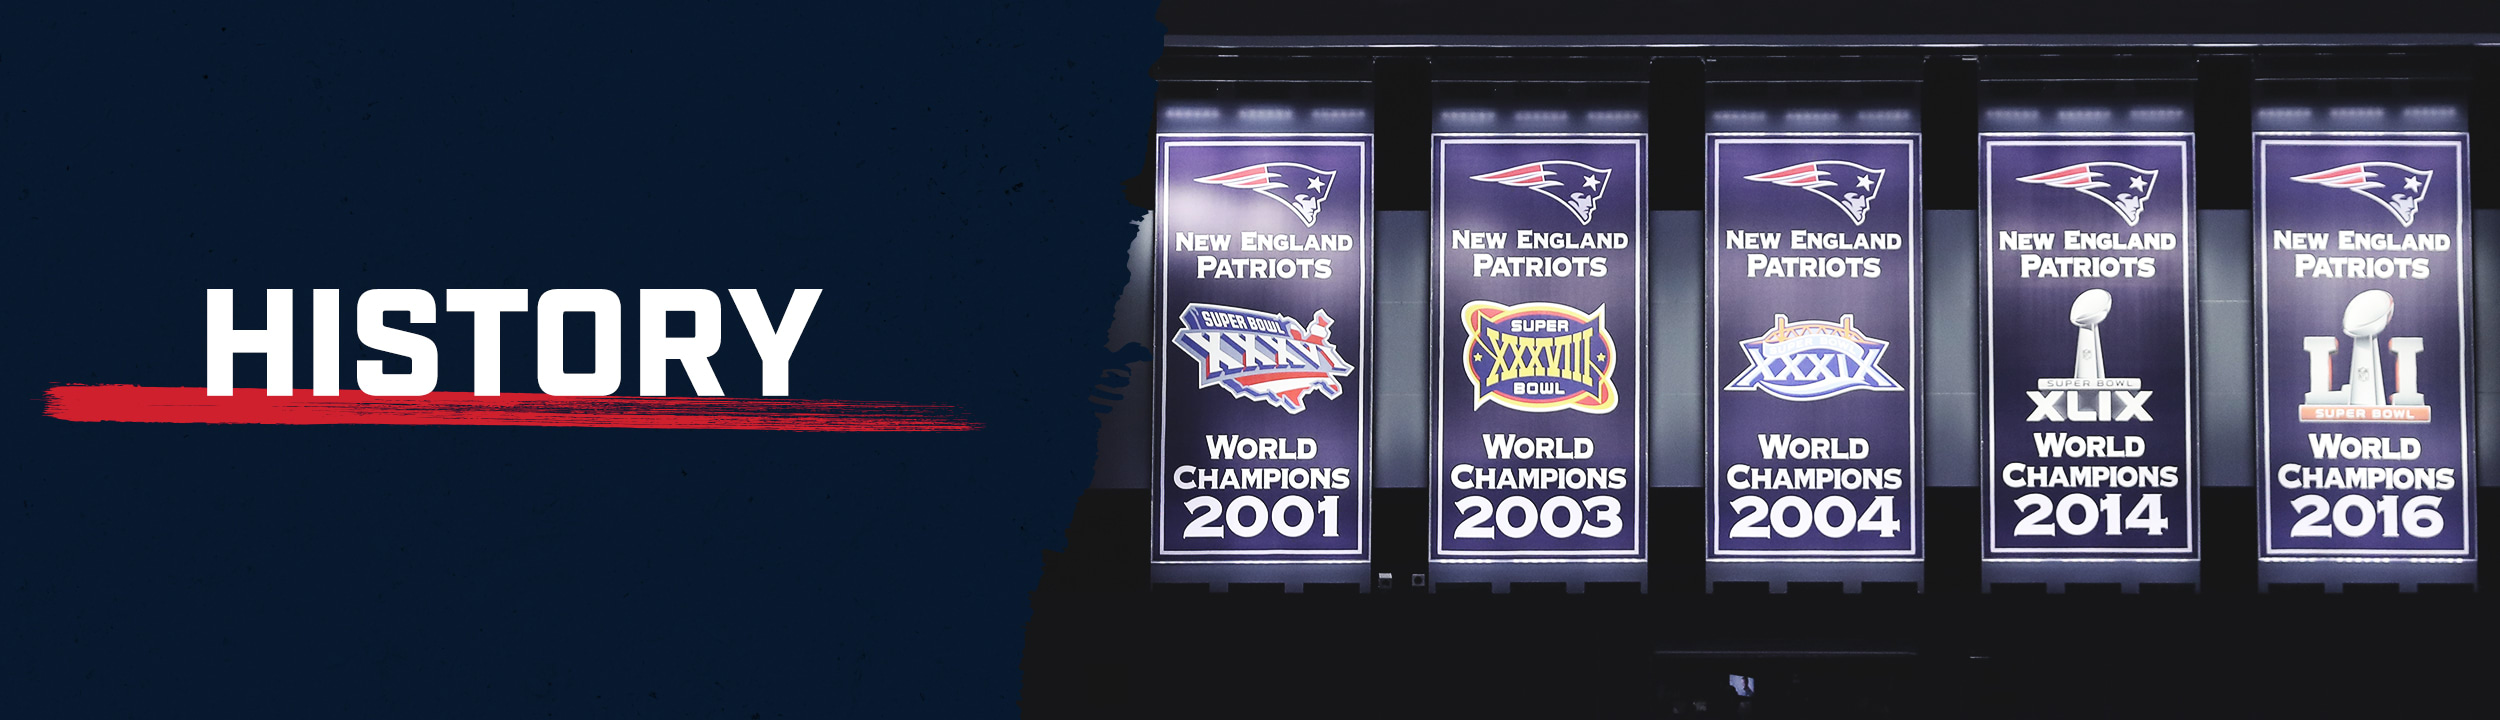 Official website of the New England Patriots 923473c91